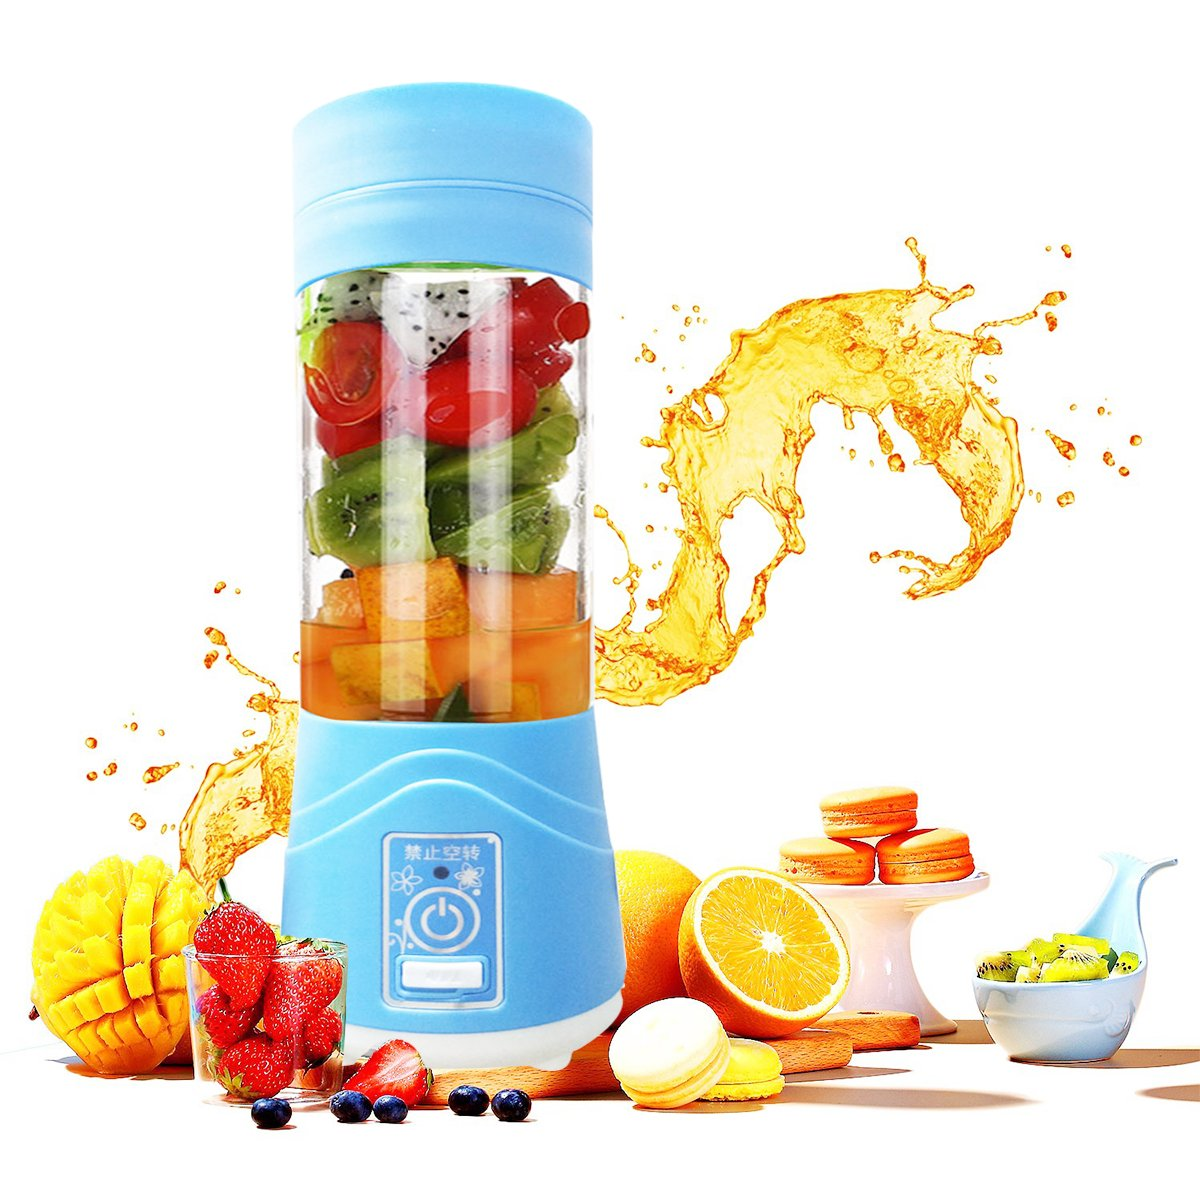 Lovep Portable Personal Blenders, Smoothie Blender USB Rechargeable Juicer Cup Household Fruit Mixer,Food Grade PC+Food Grade Rubber Seal with Powerful Motor, Water Bottle